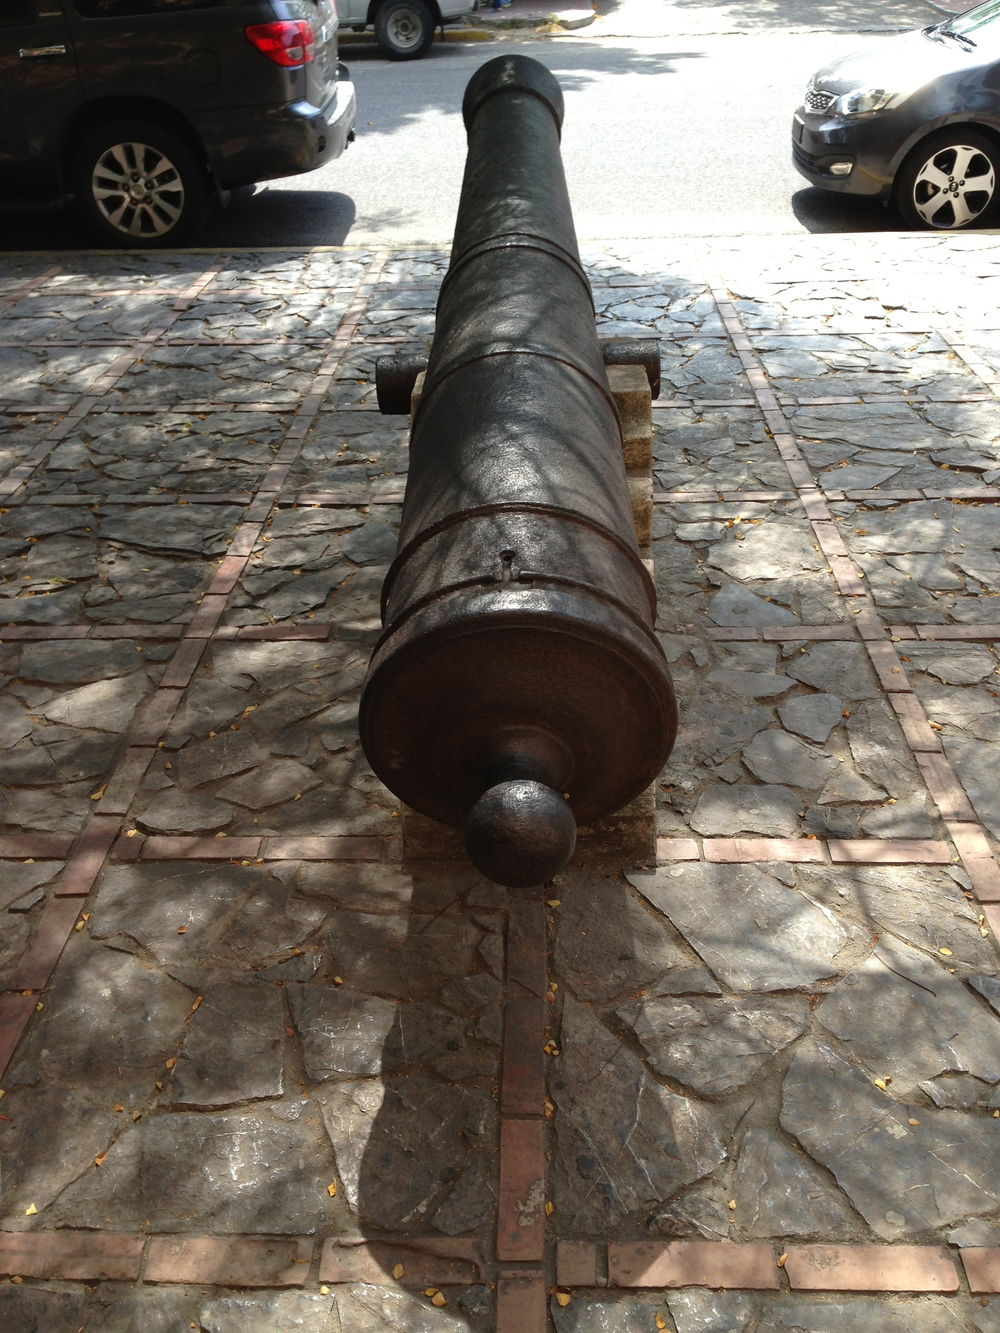 Cannon at the entrance to the museum